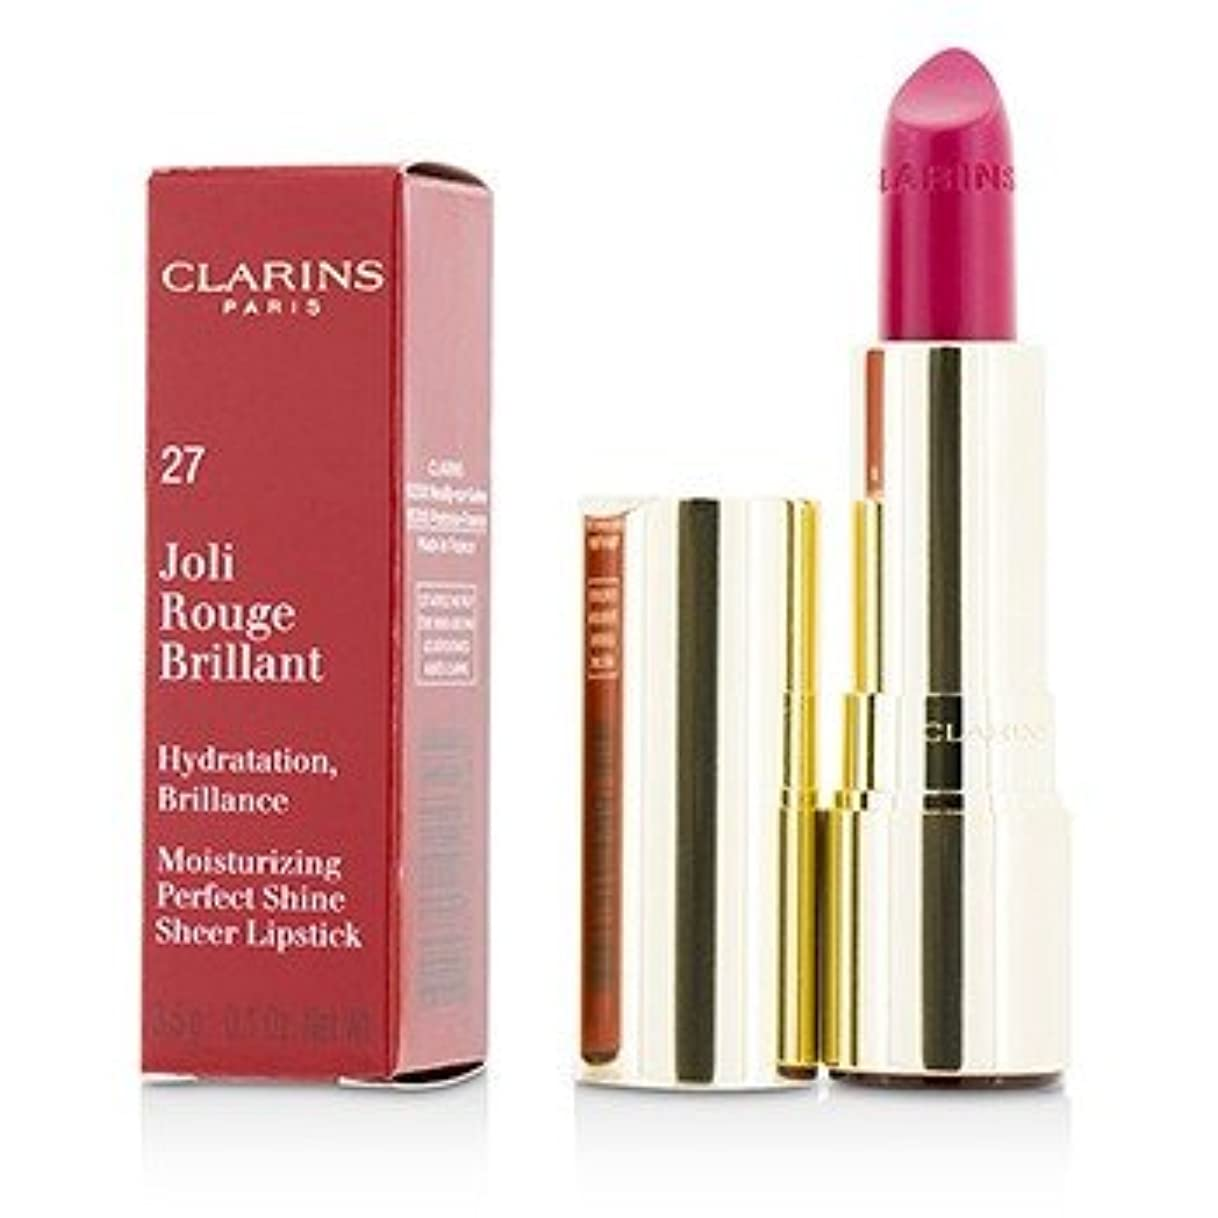 不安定文句を言うなしで[Clarins] Joli Rouge Brillant (Moisturizing Perfect Shine Sheer Lipstick) - # 27 Hot Fuchsia 3.5g/0.1oz